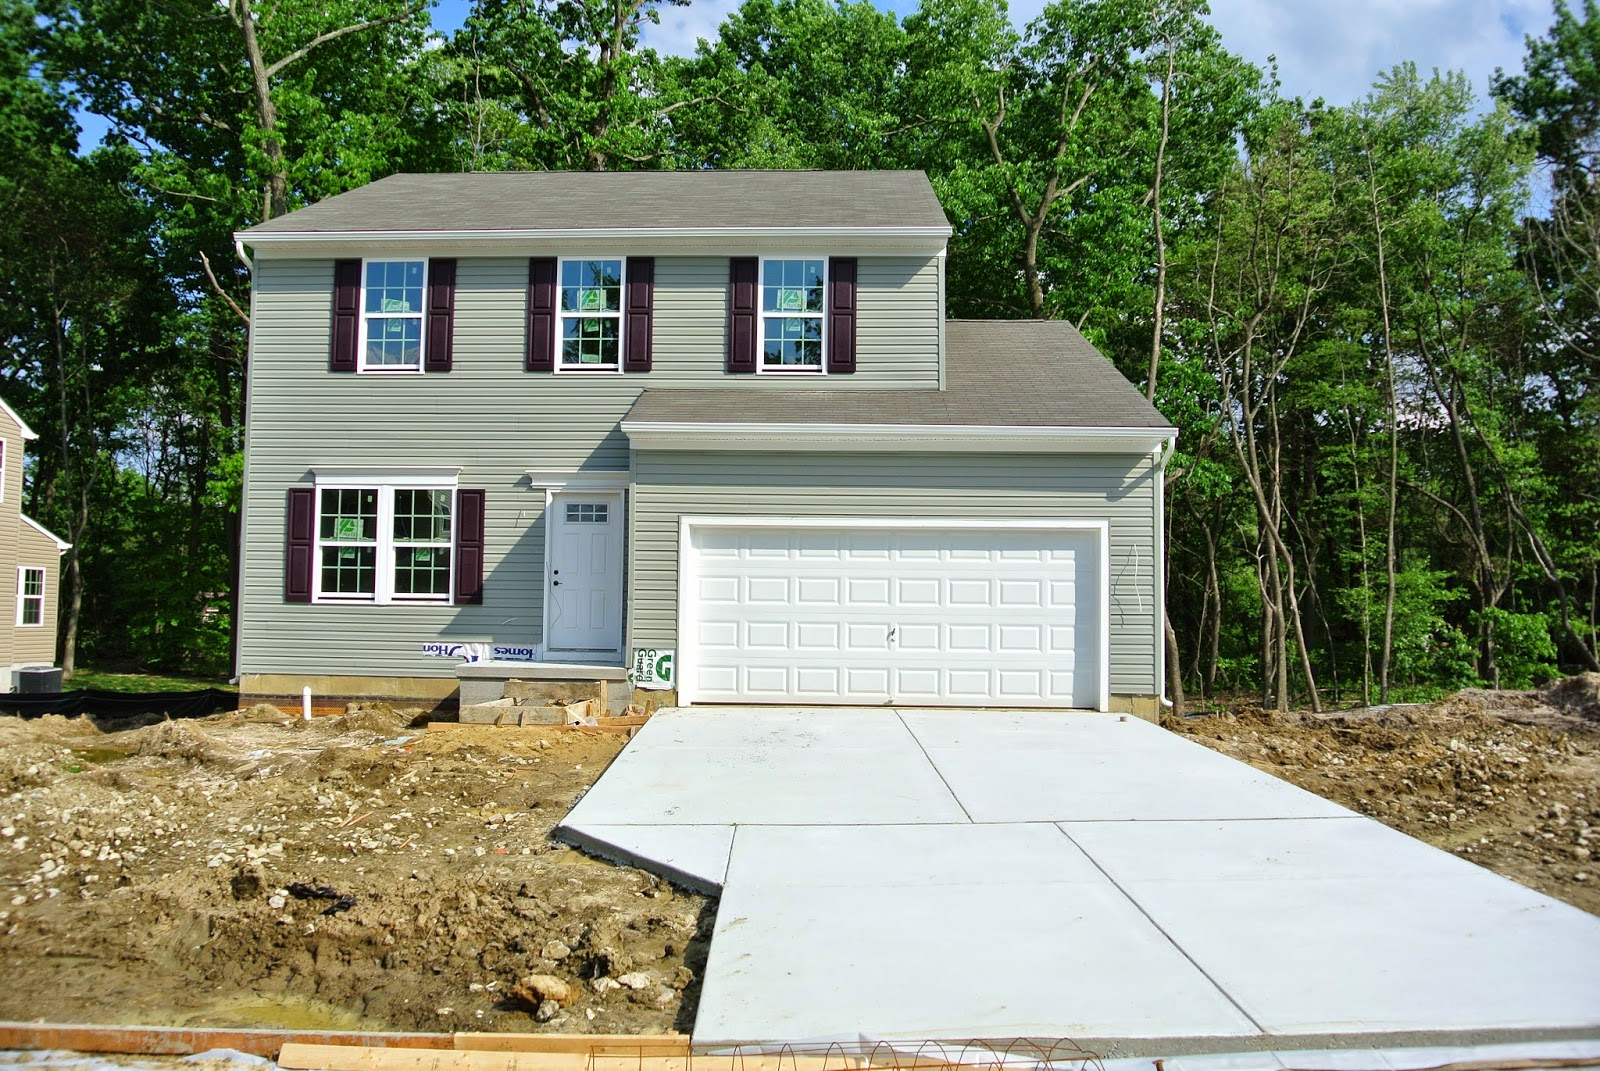 Picture of the Ryan Home Florence Model being constructed with driveway installed